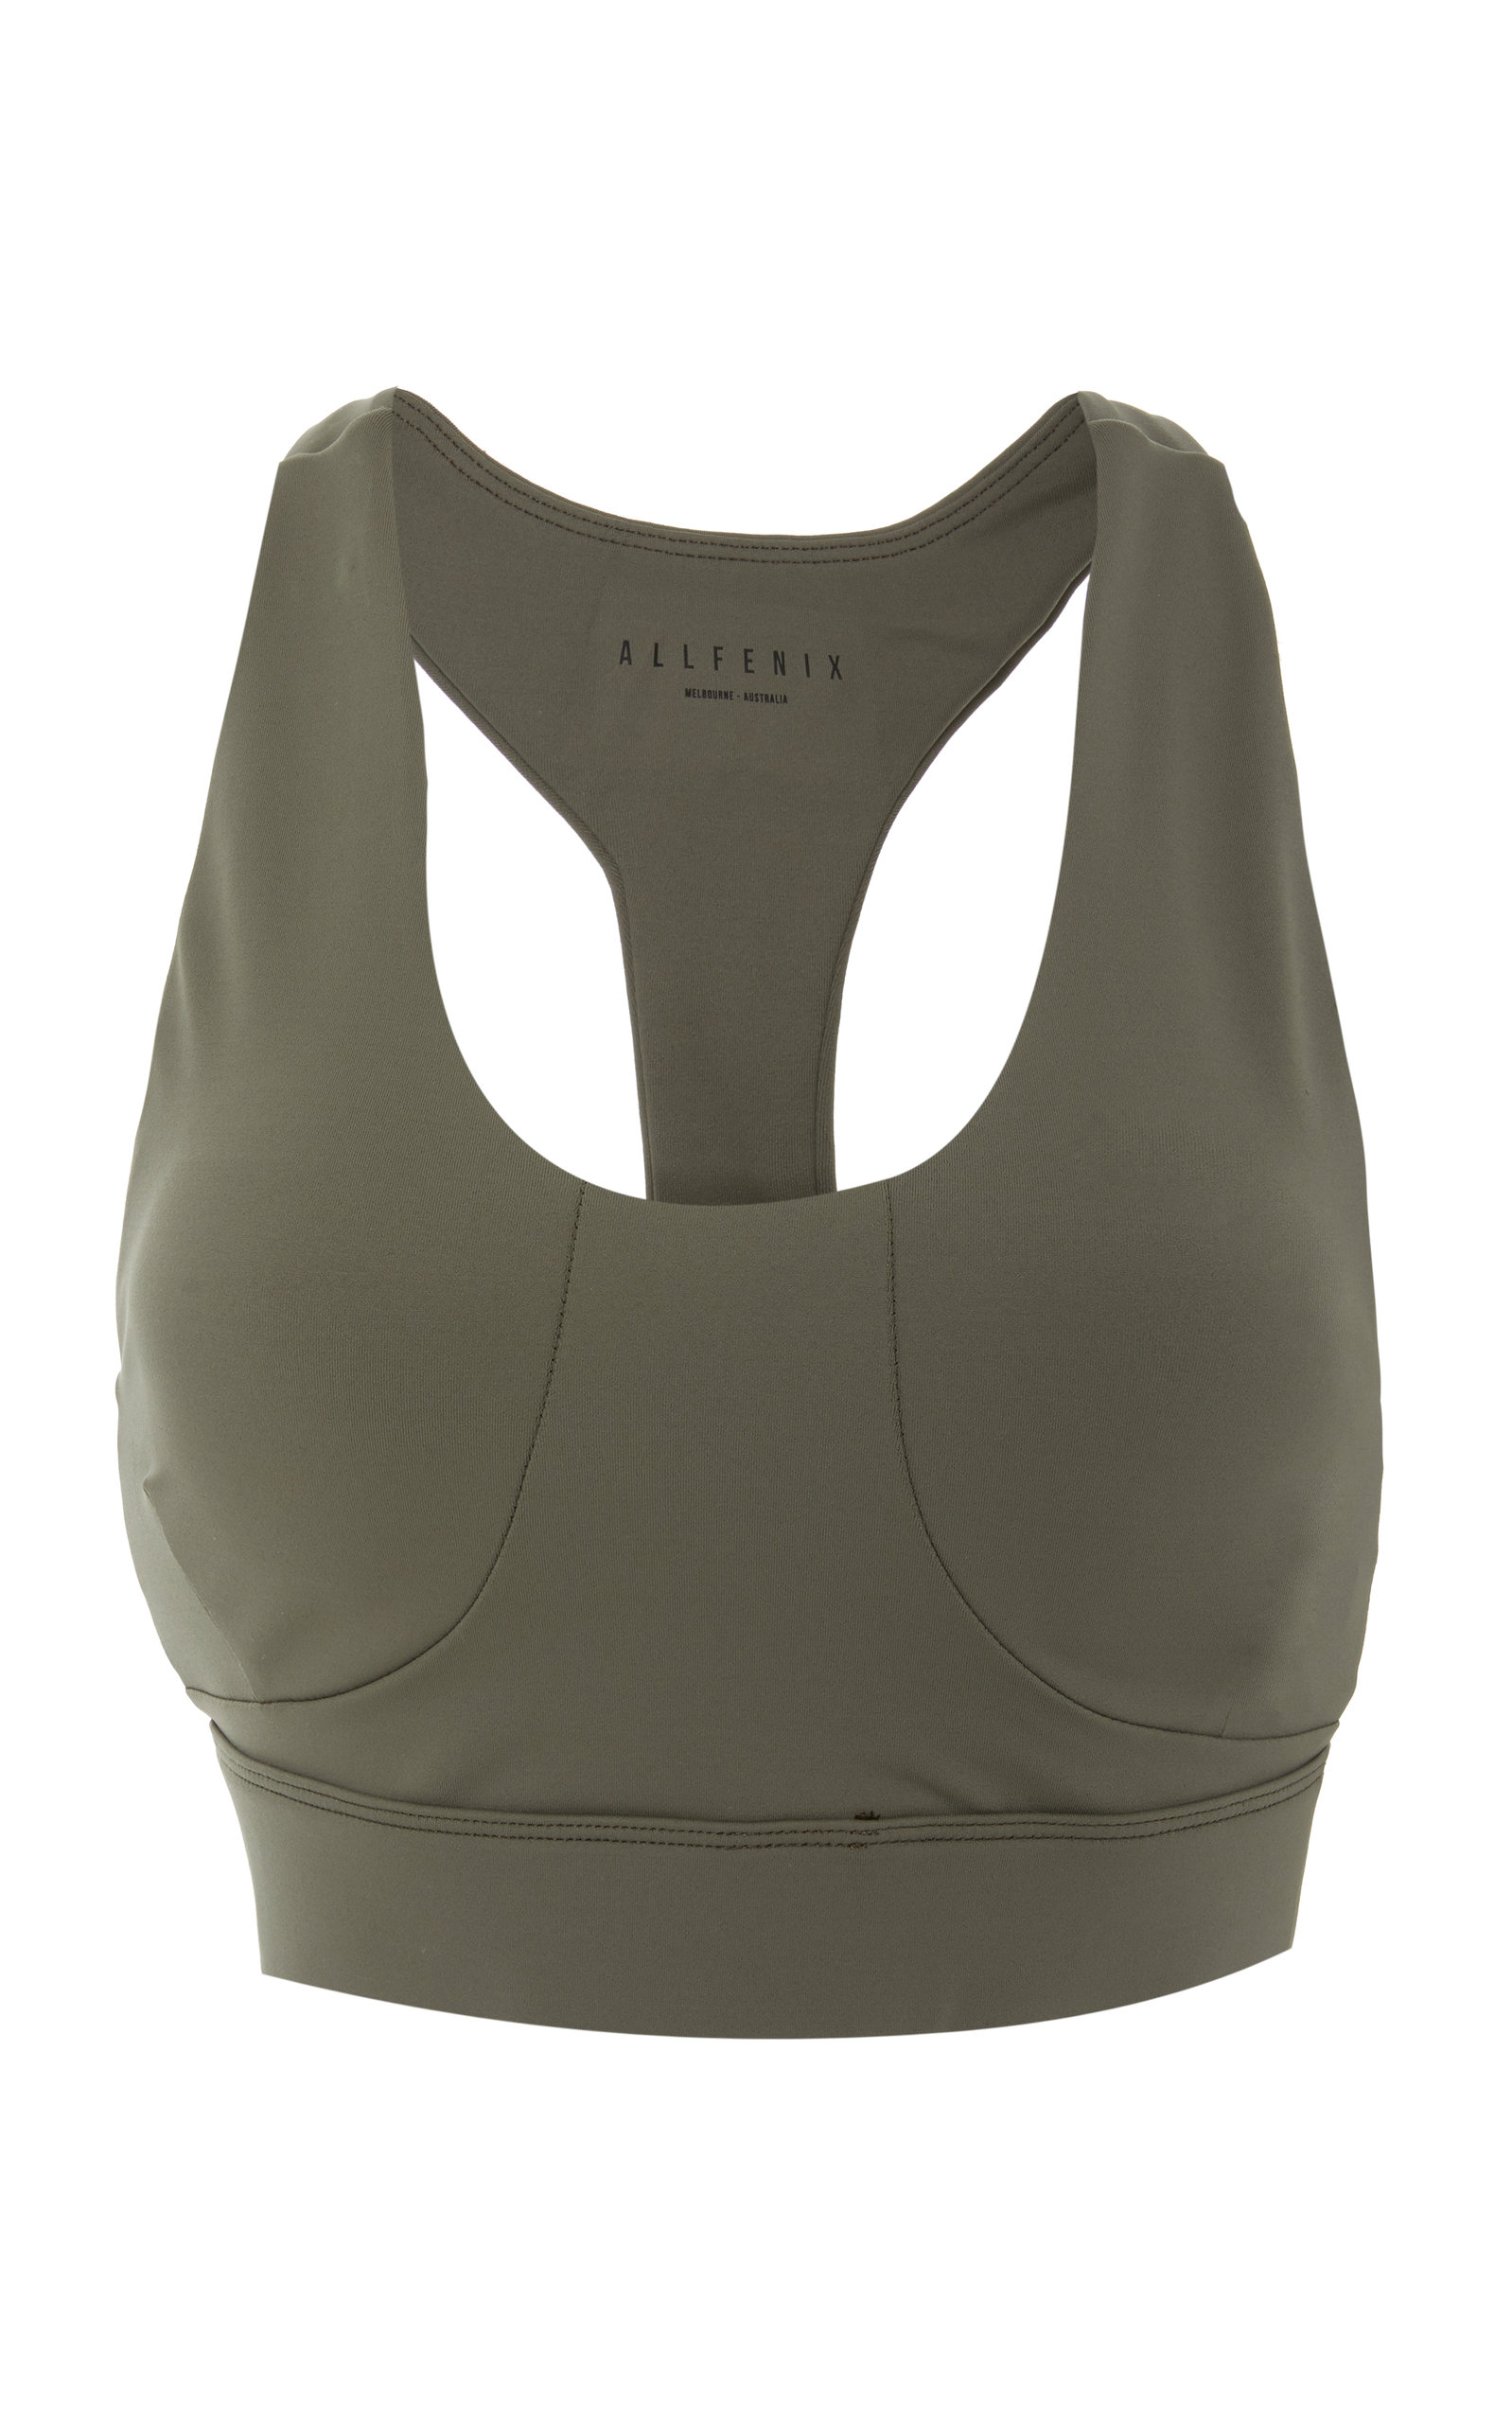 ALL FENIX Selene Sports Bra in Green